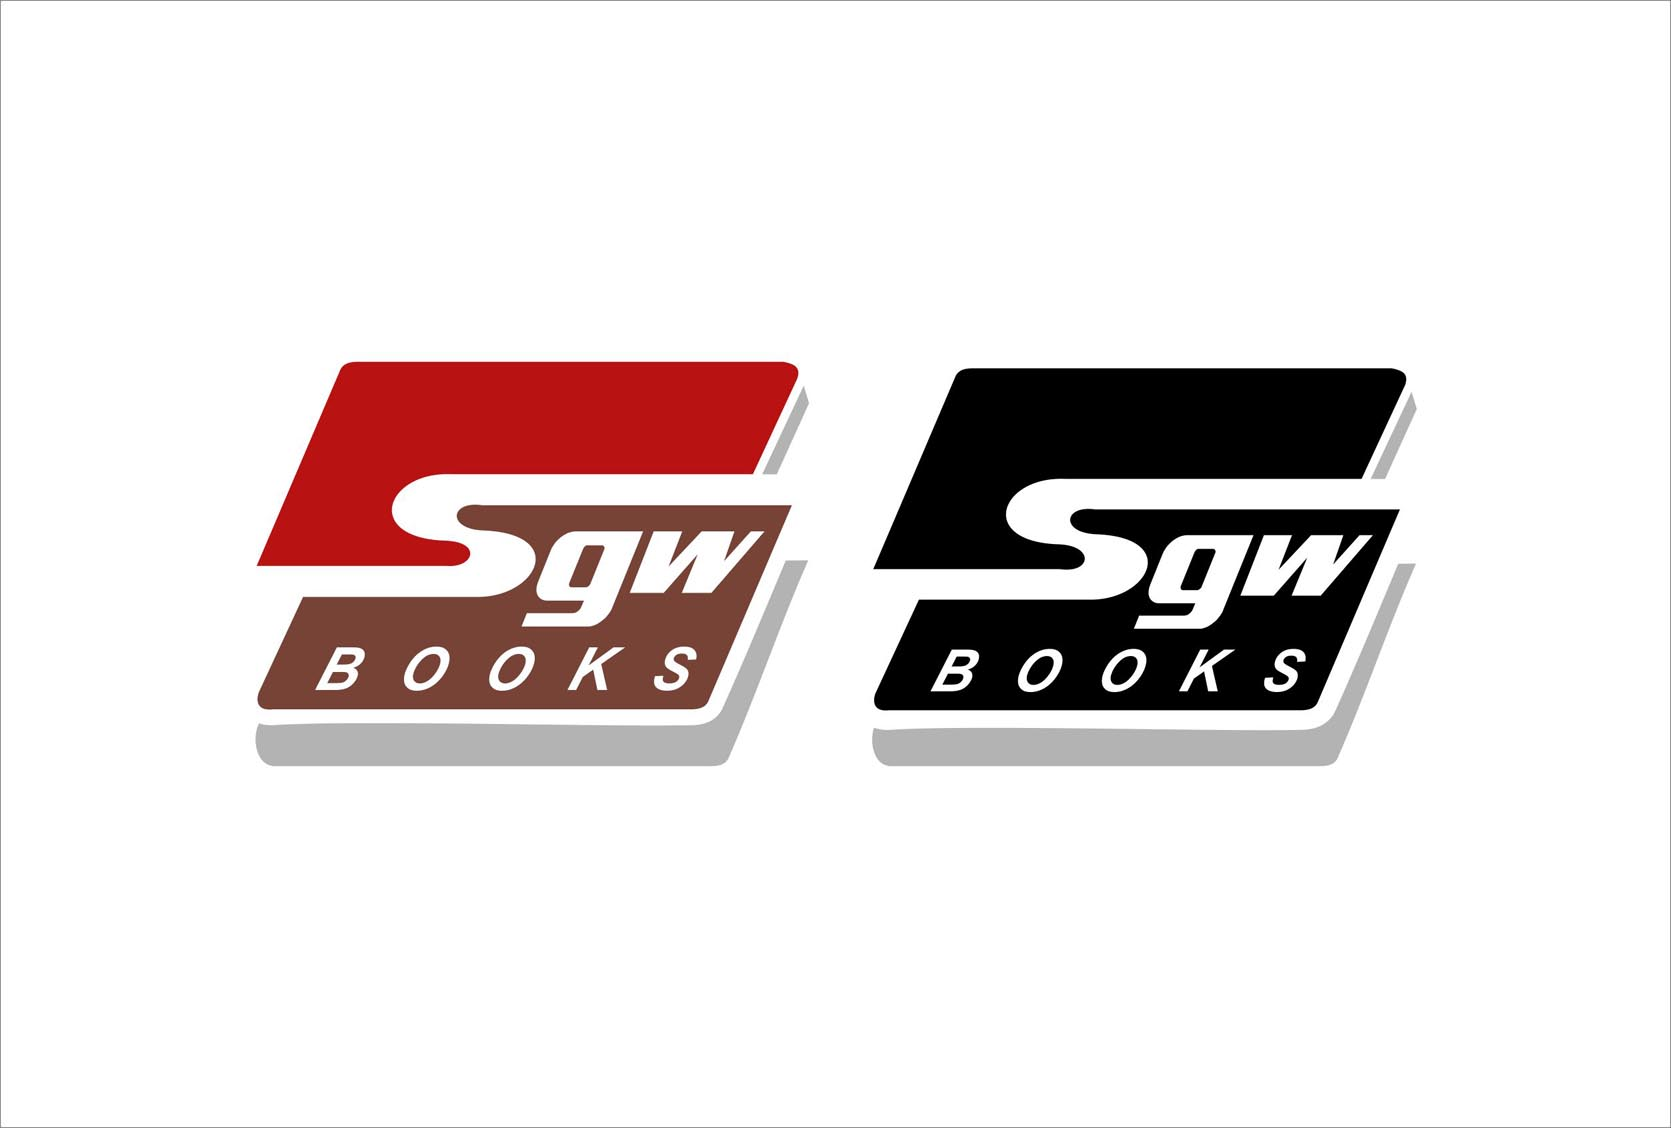 Logo Design by Niraj Dhimmar - Entry No. 68 in the Logo Design Contest SGW Books Logo Design.